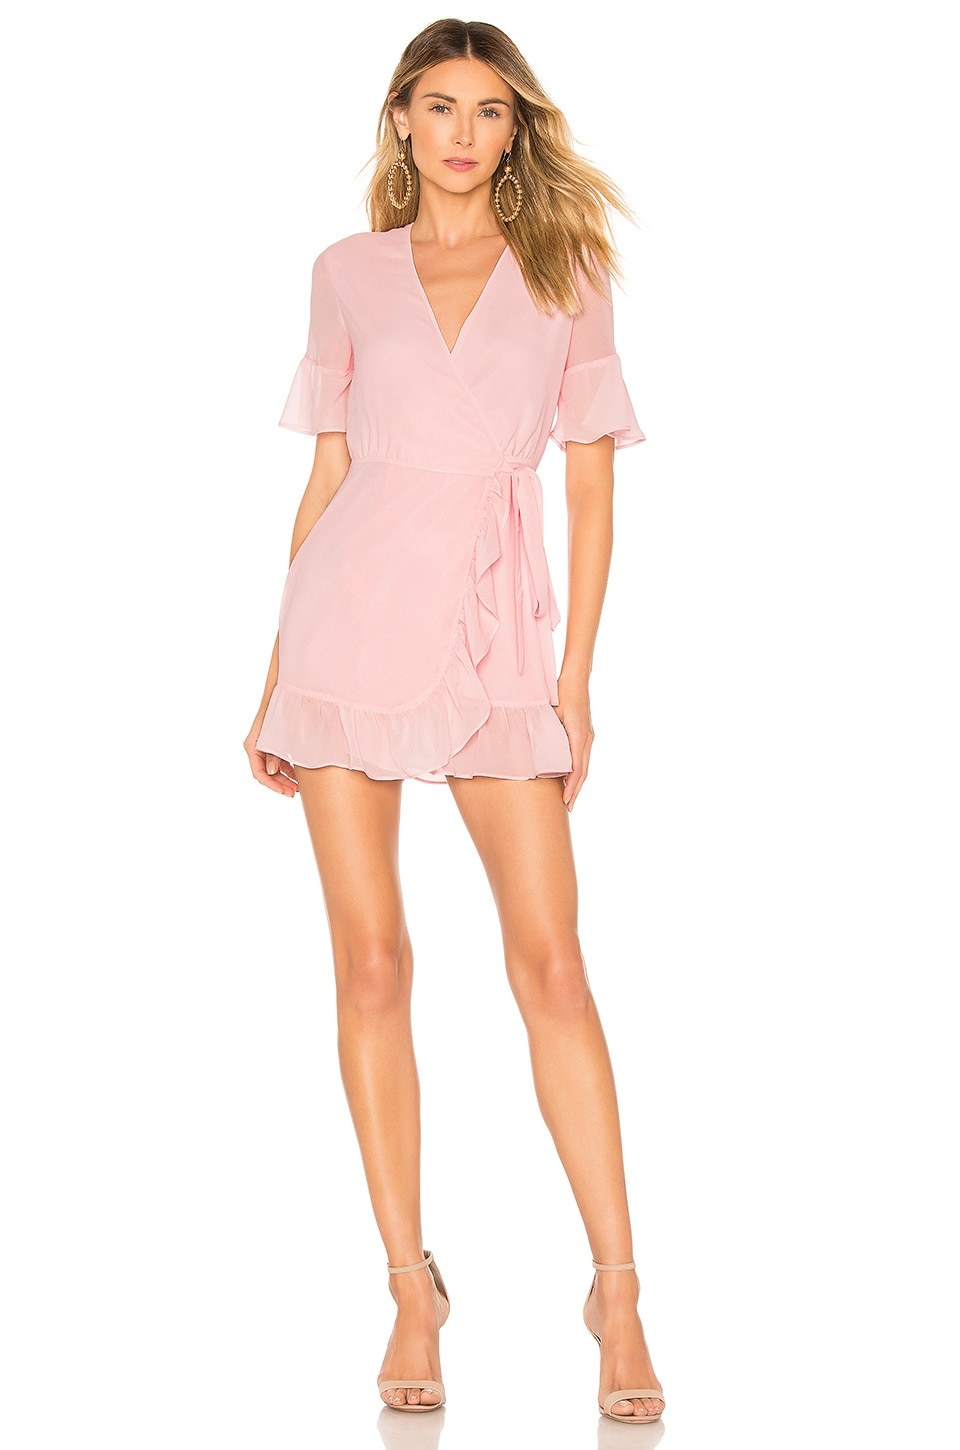 Privacy Please May Mini Dress in Baby Pink